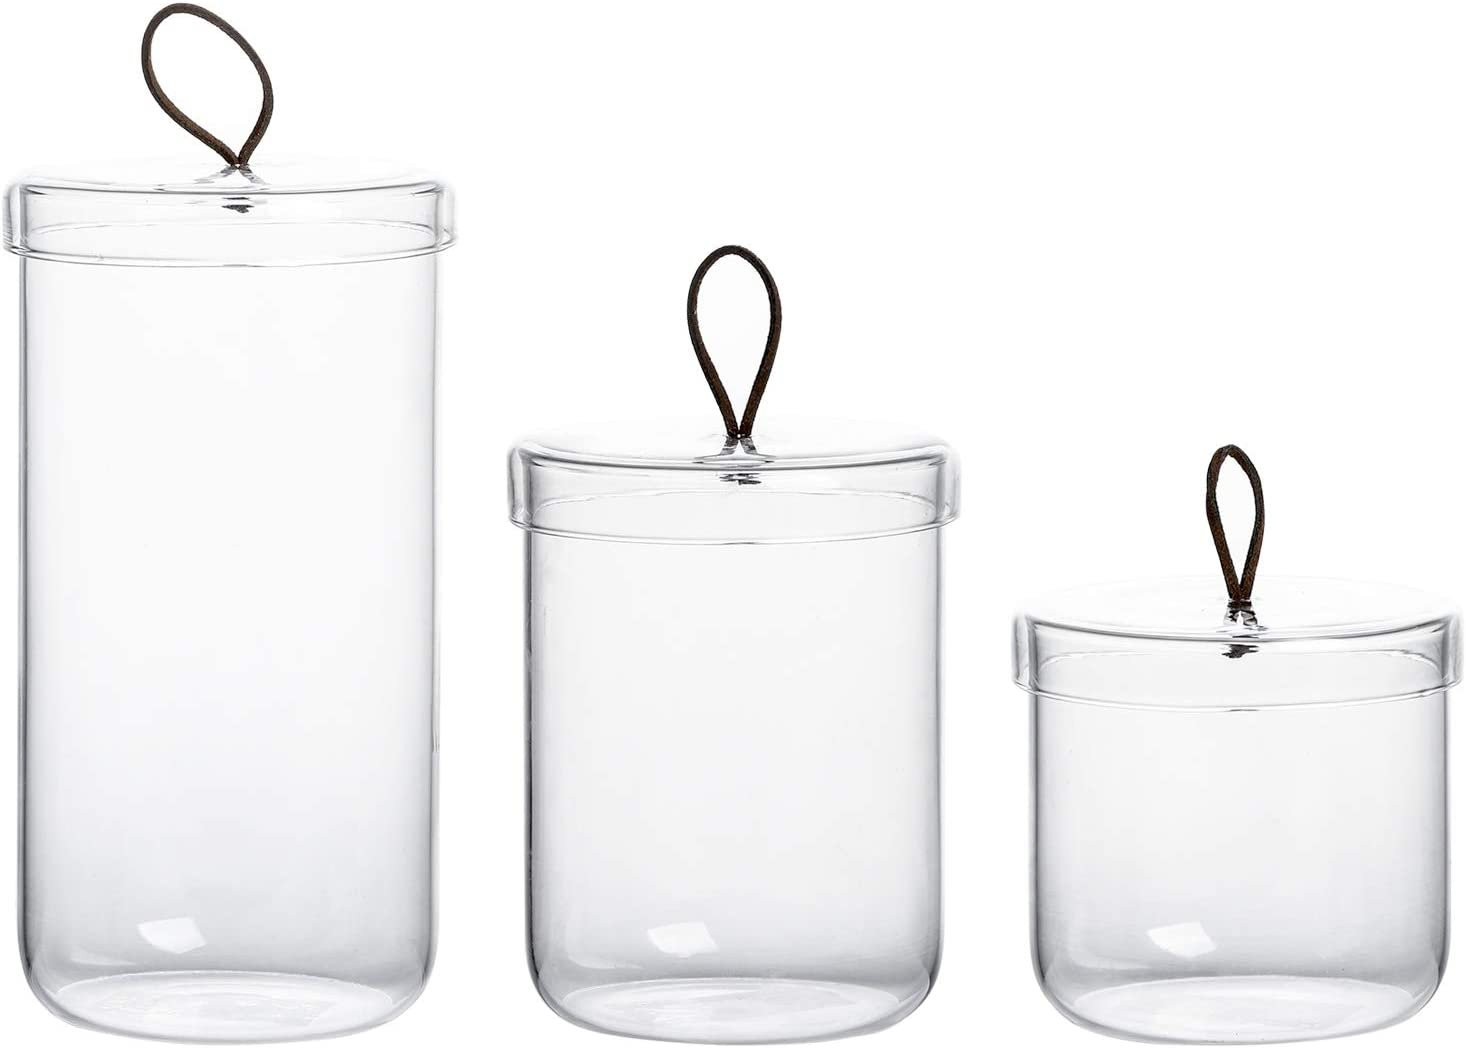 Amazon Com Glass Apothecary Jars Cotton Jar Bathroom Storage Canisters Set Of 3 Kitchen Dining